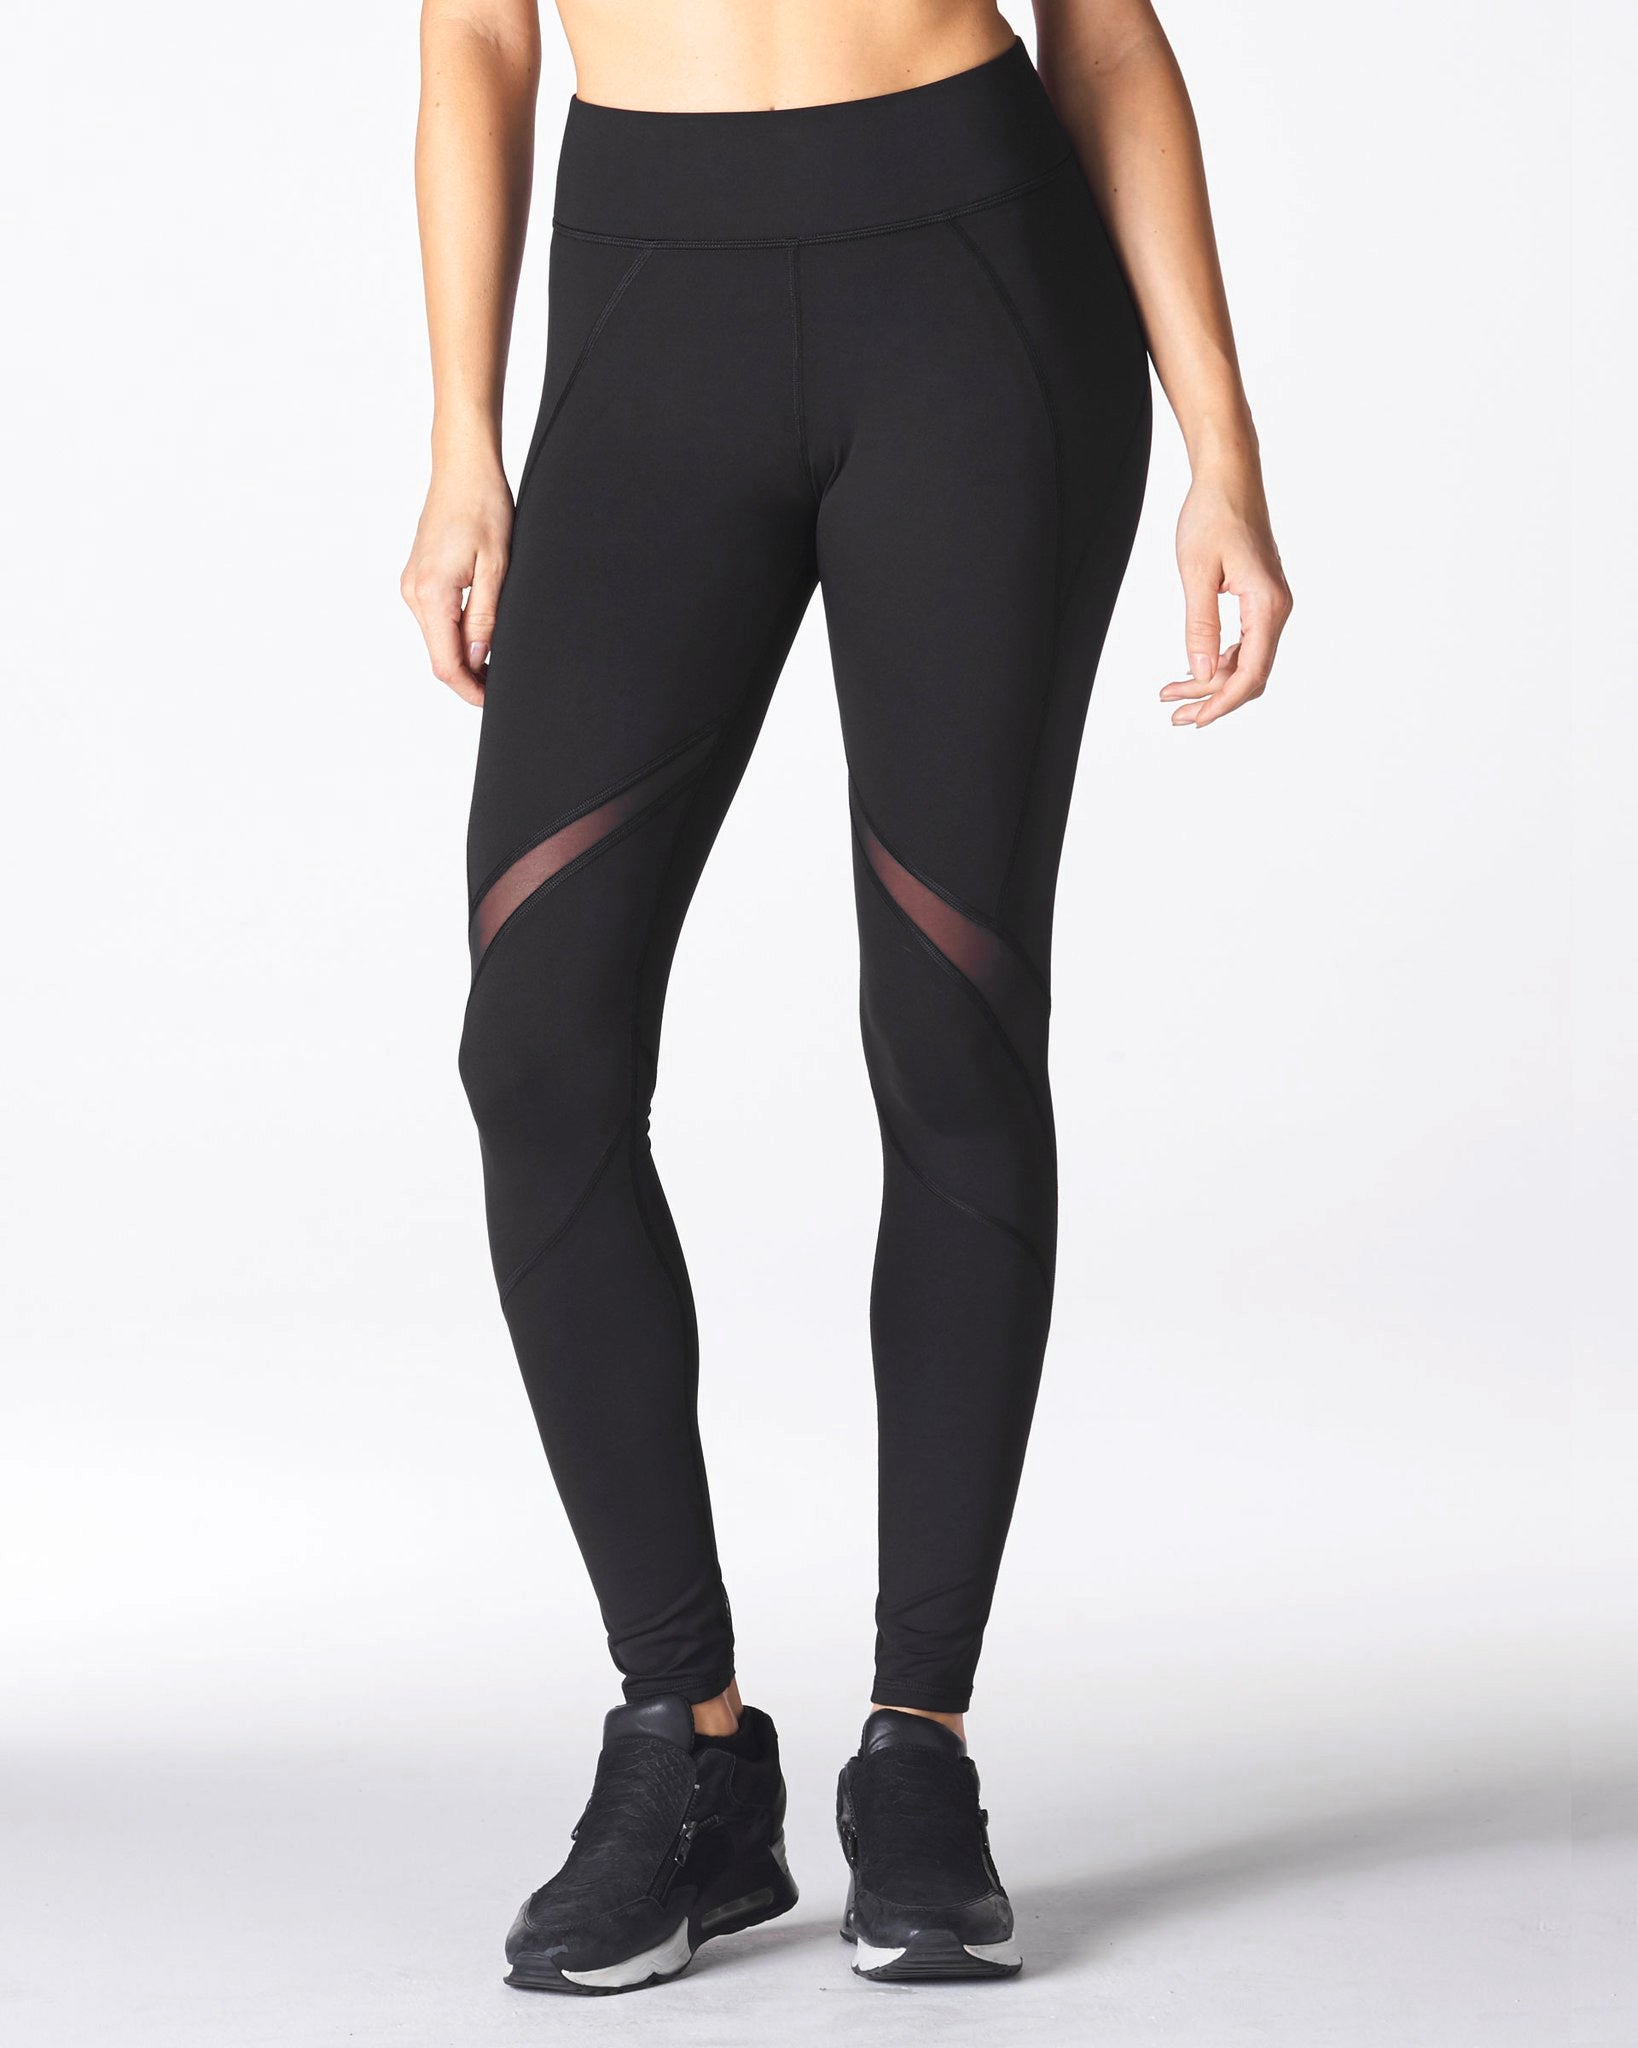 deco-legging-black